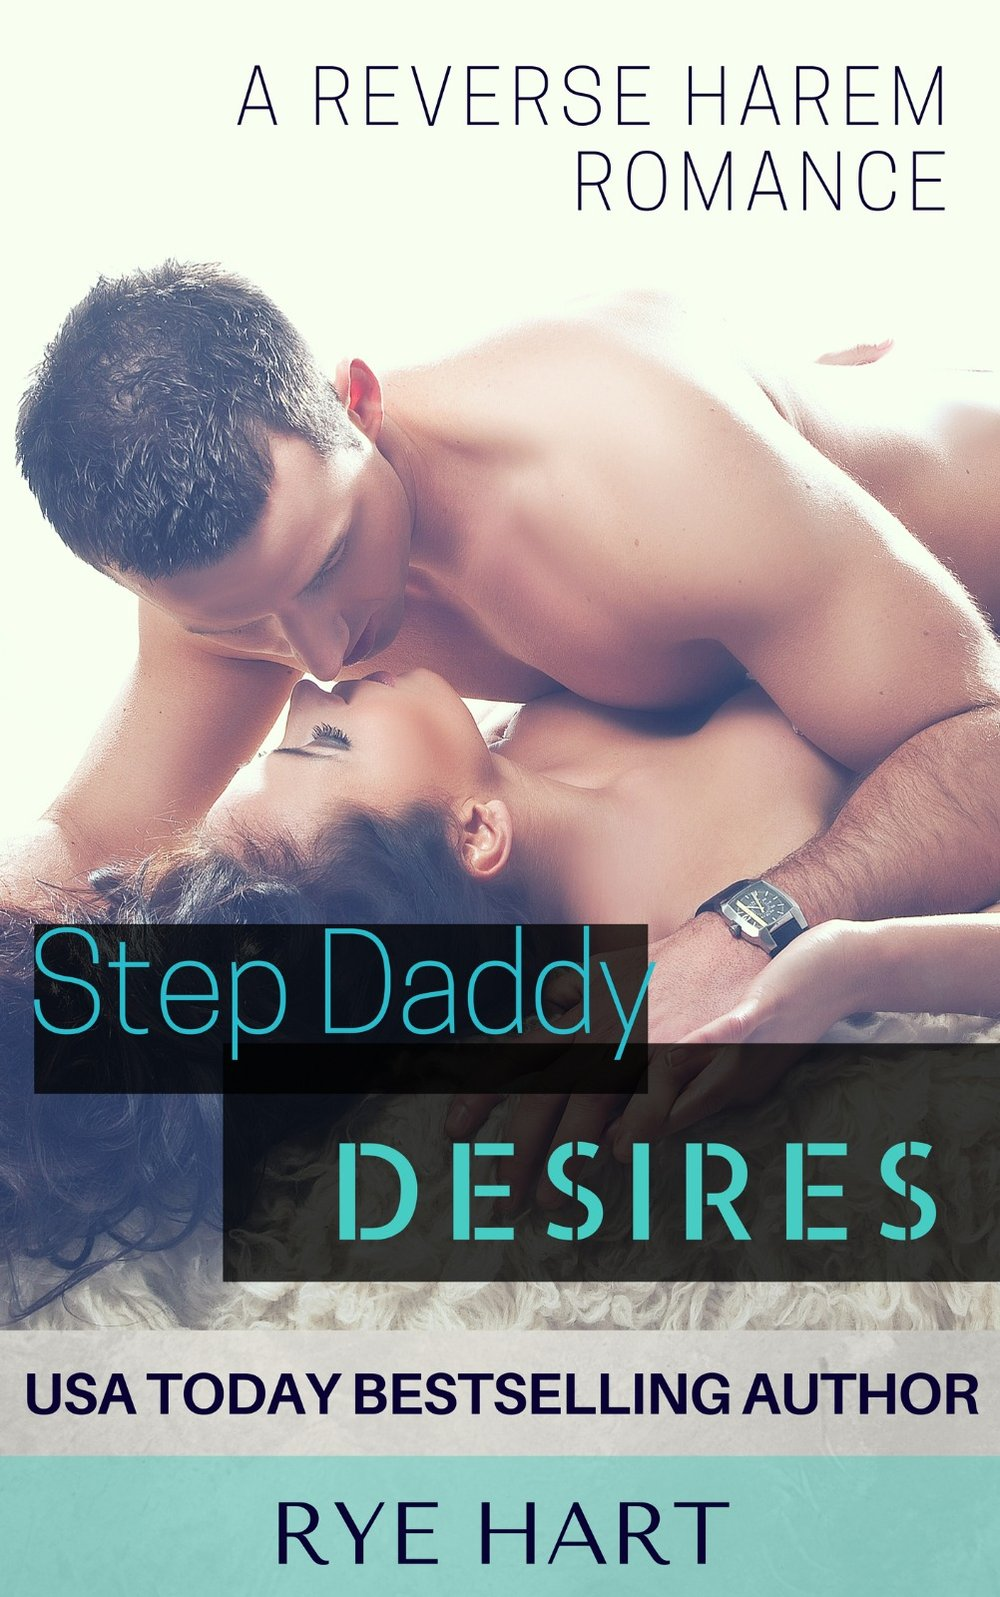 Step Daddy Desires by Rye Hart